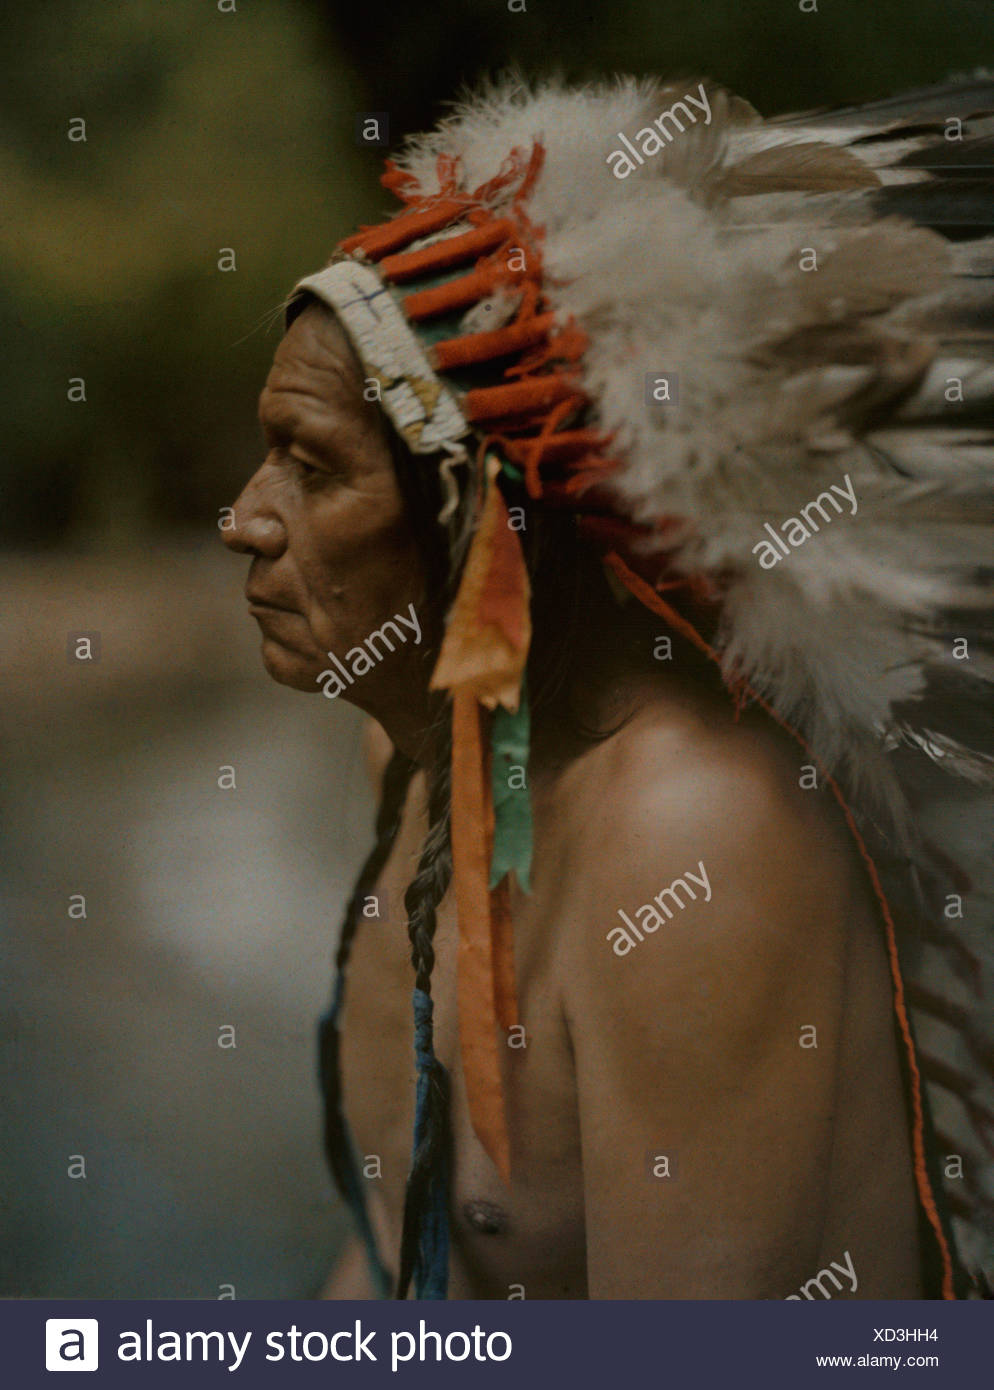 Portrait of a Taos Indian chief with war bonnet. - Stock Image